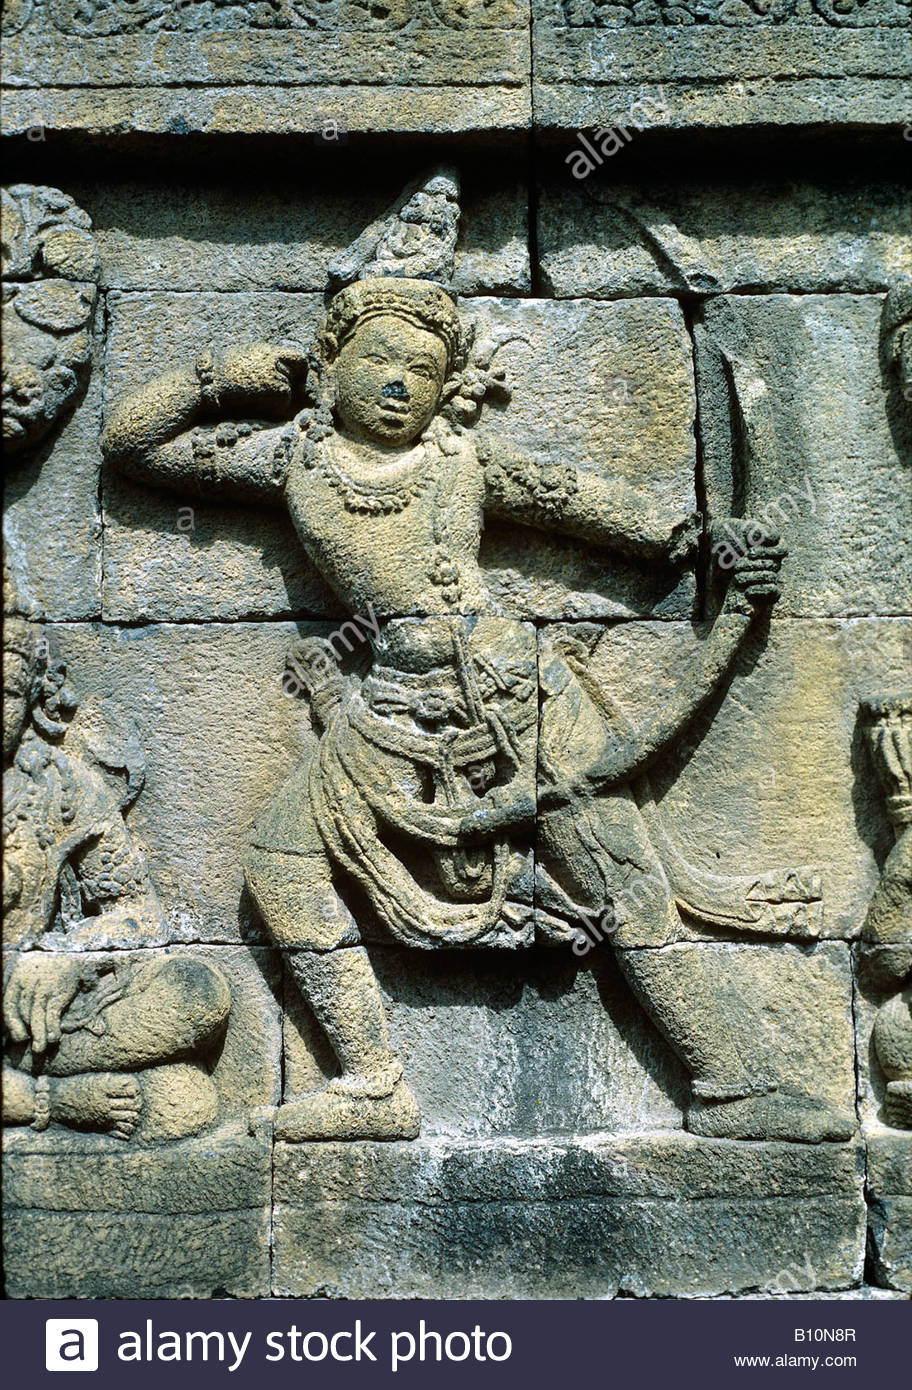 Borobodur Java 850 AD Buddha Shiva with bow and arrow Carving  Copyright A Eaton AAA Collection - Stock Image